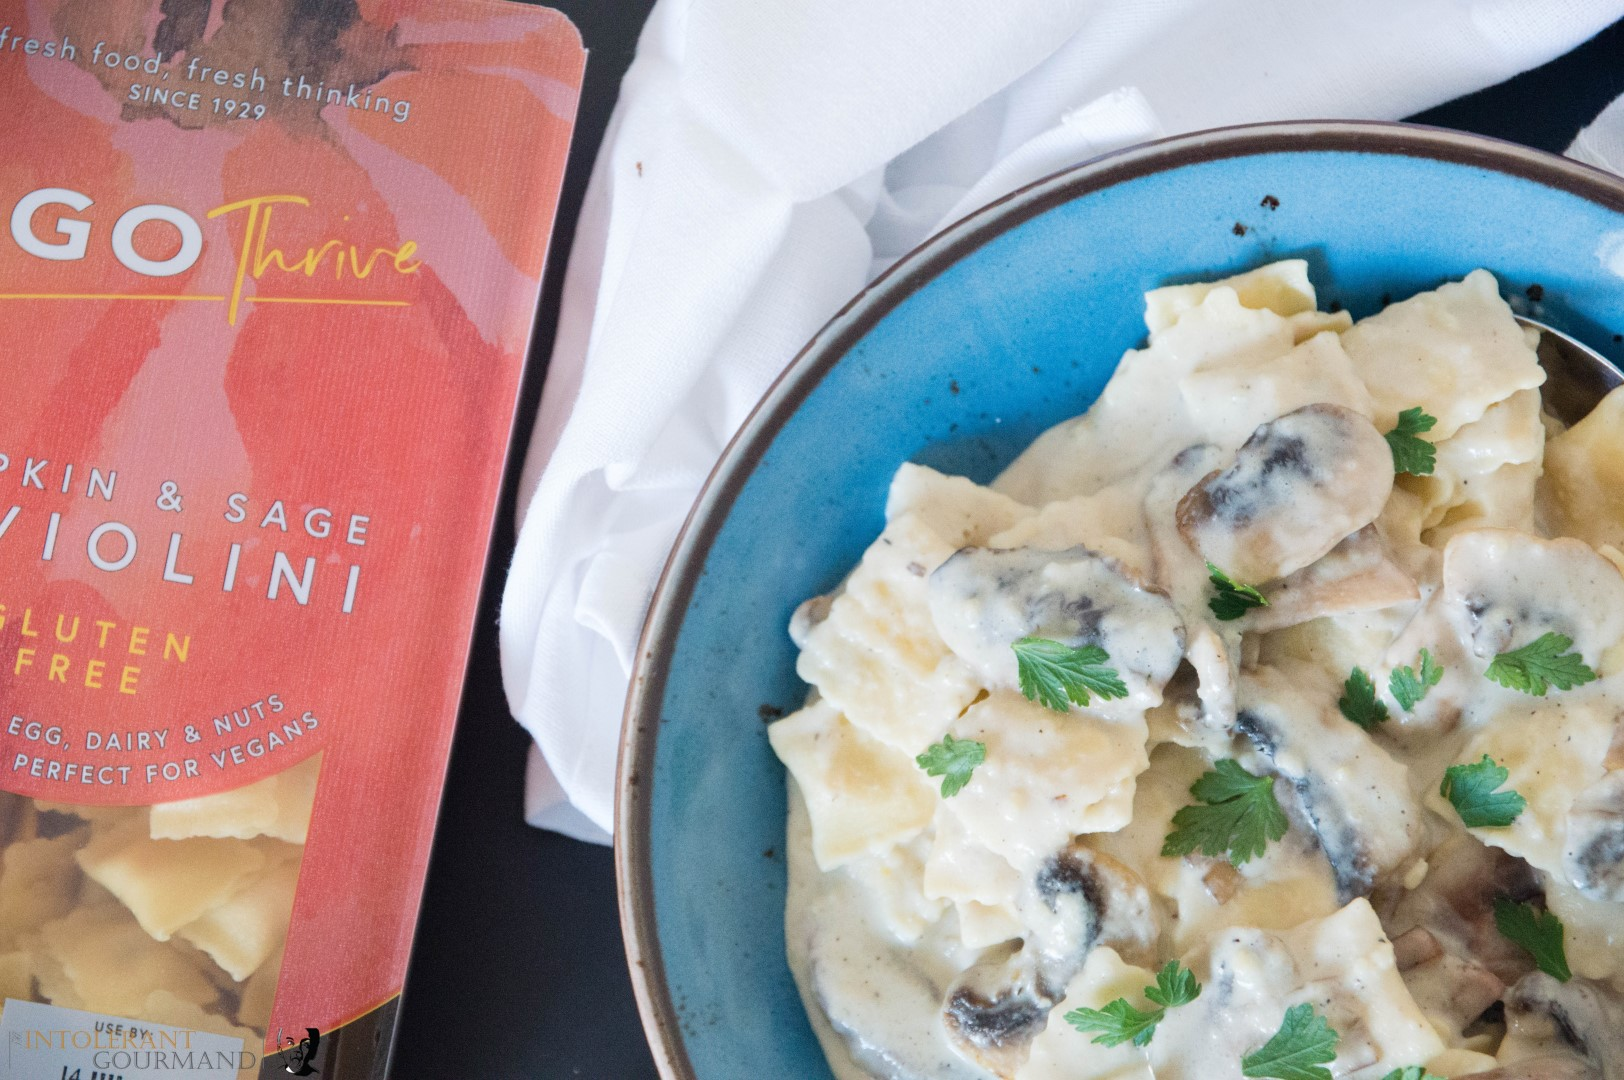 Creamy Mushroom Sauce with Pumpkin Raviolini - a delicously quick and simple dairy-free and gluten-free creamy mushroom sauce paired with pumpkin raviolini to bring the ultimate in comfort food! www.intolerantgourmand.com